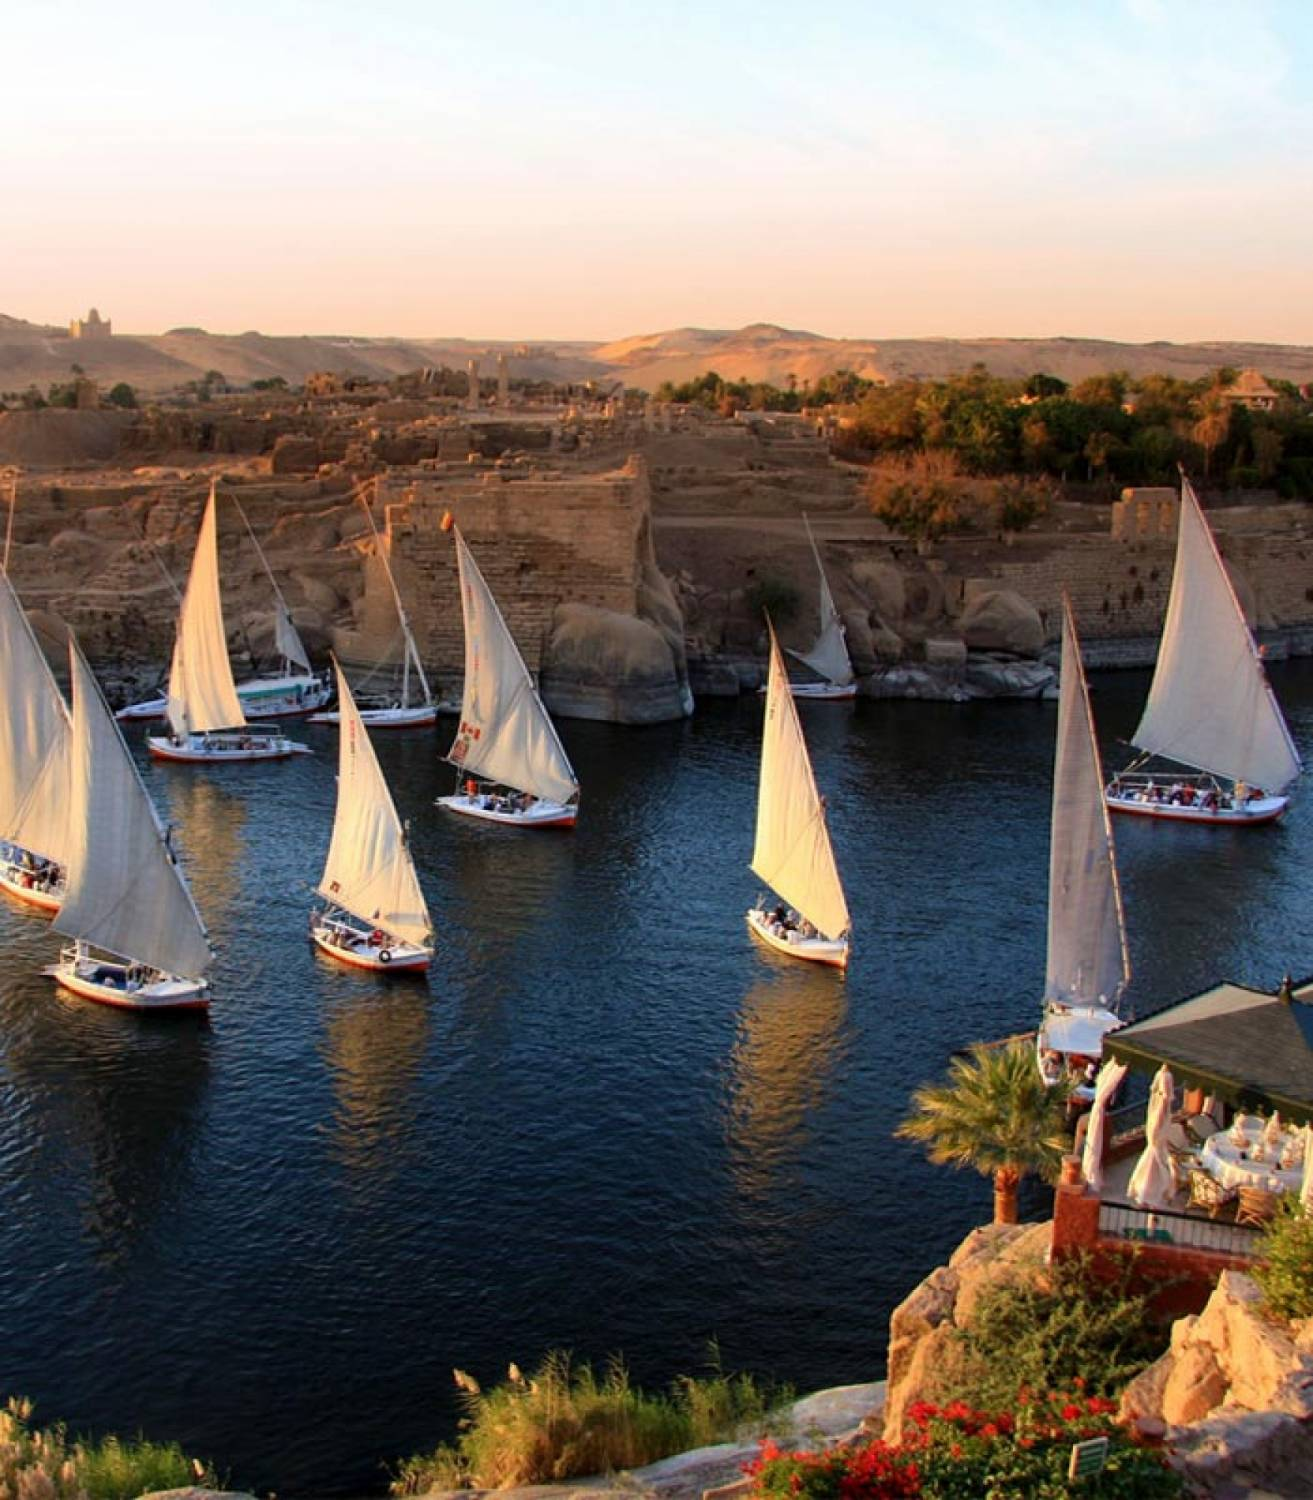 Day Recreational Tours in Aswan